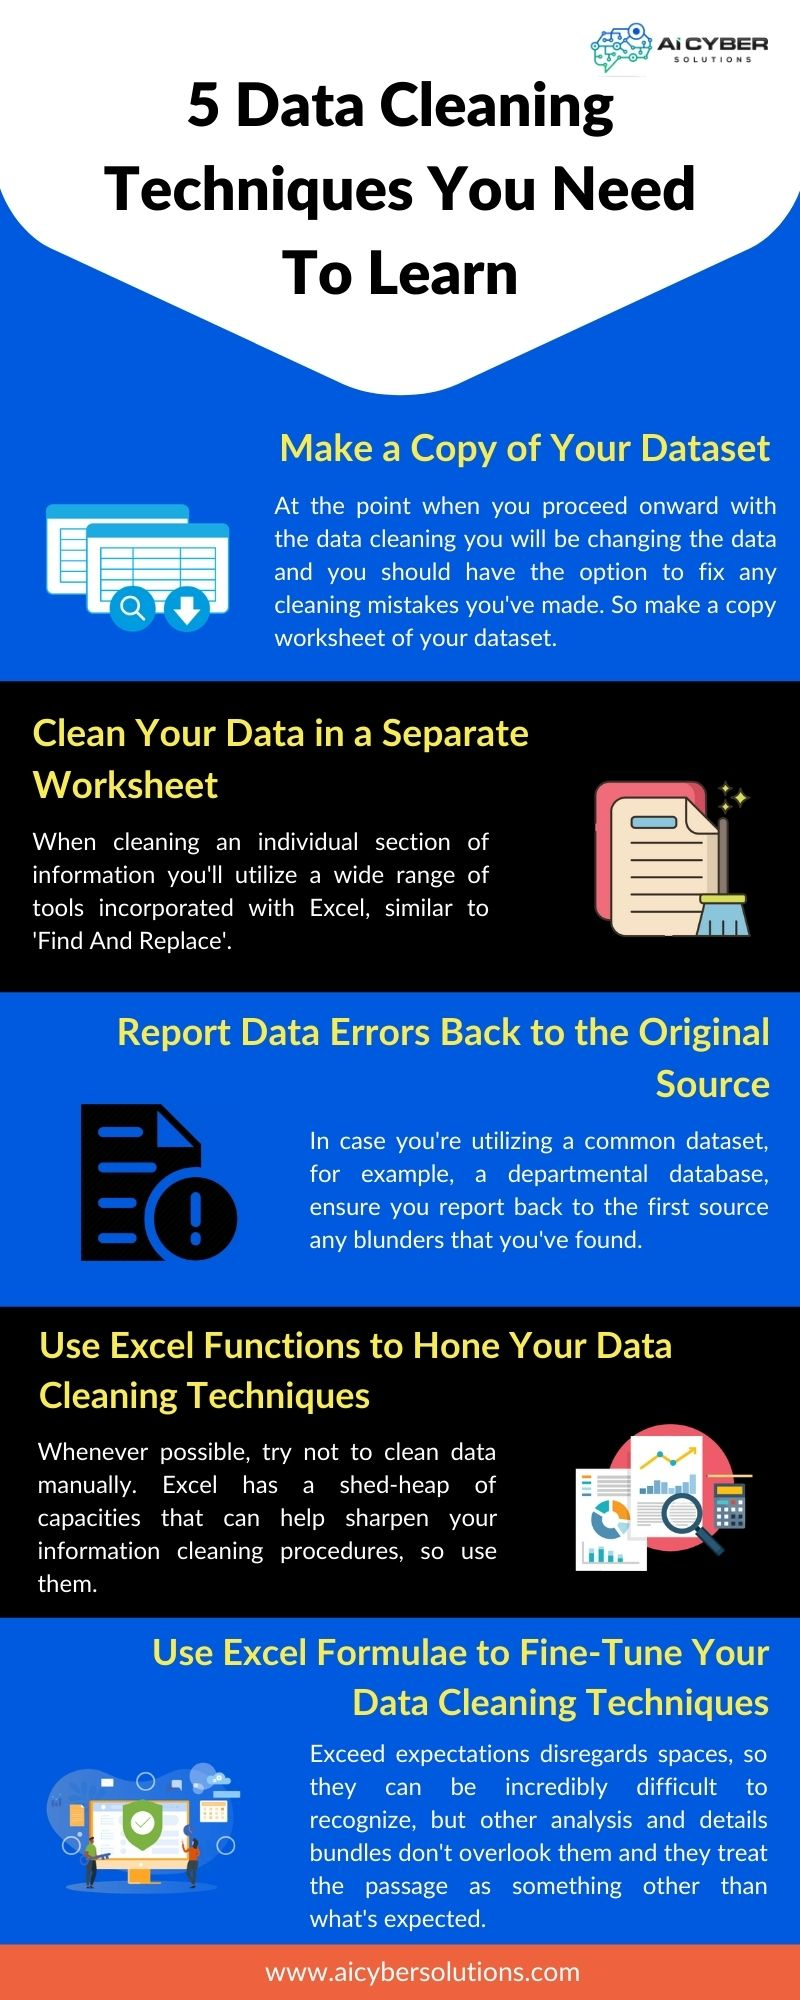 5 Data Cleaning Techniques You Need To Learn